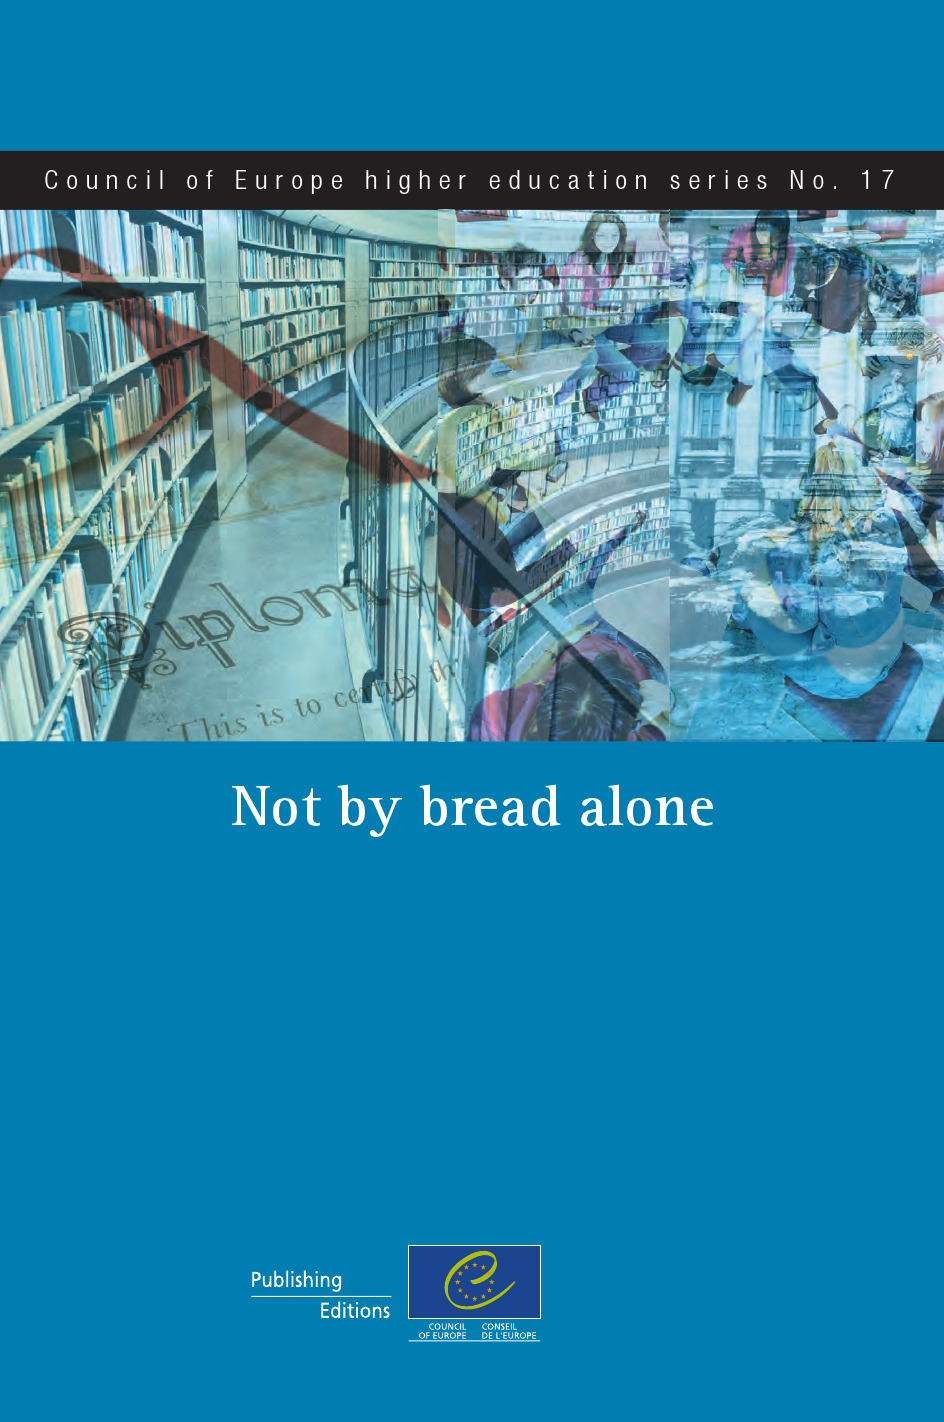 Collectif Not by bread alone (Council of Europe higher education series No.17)